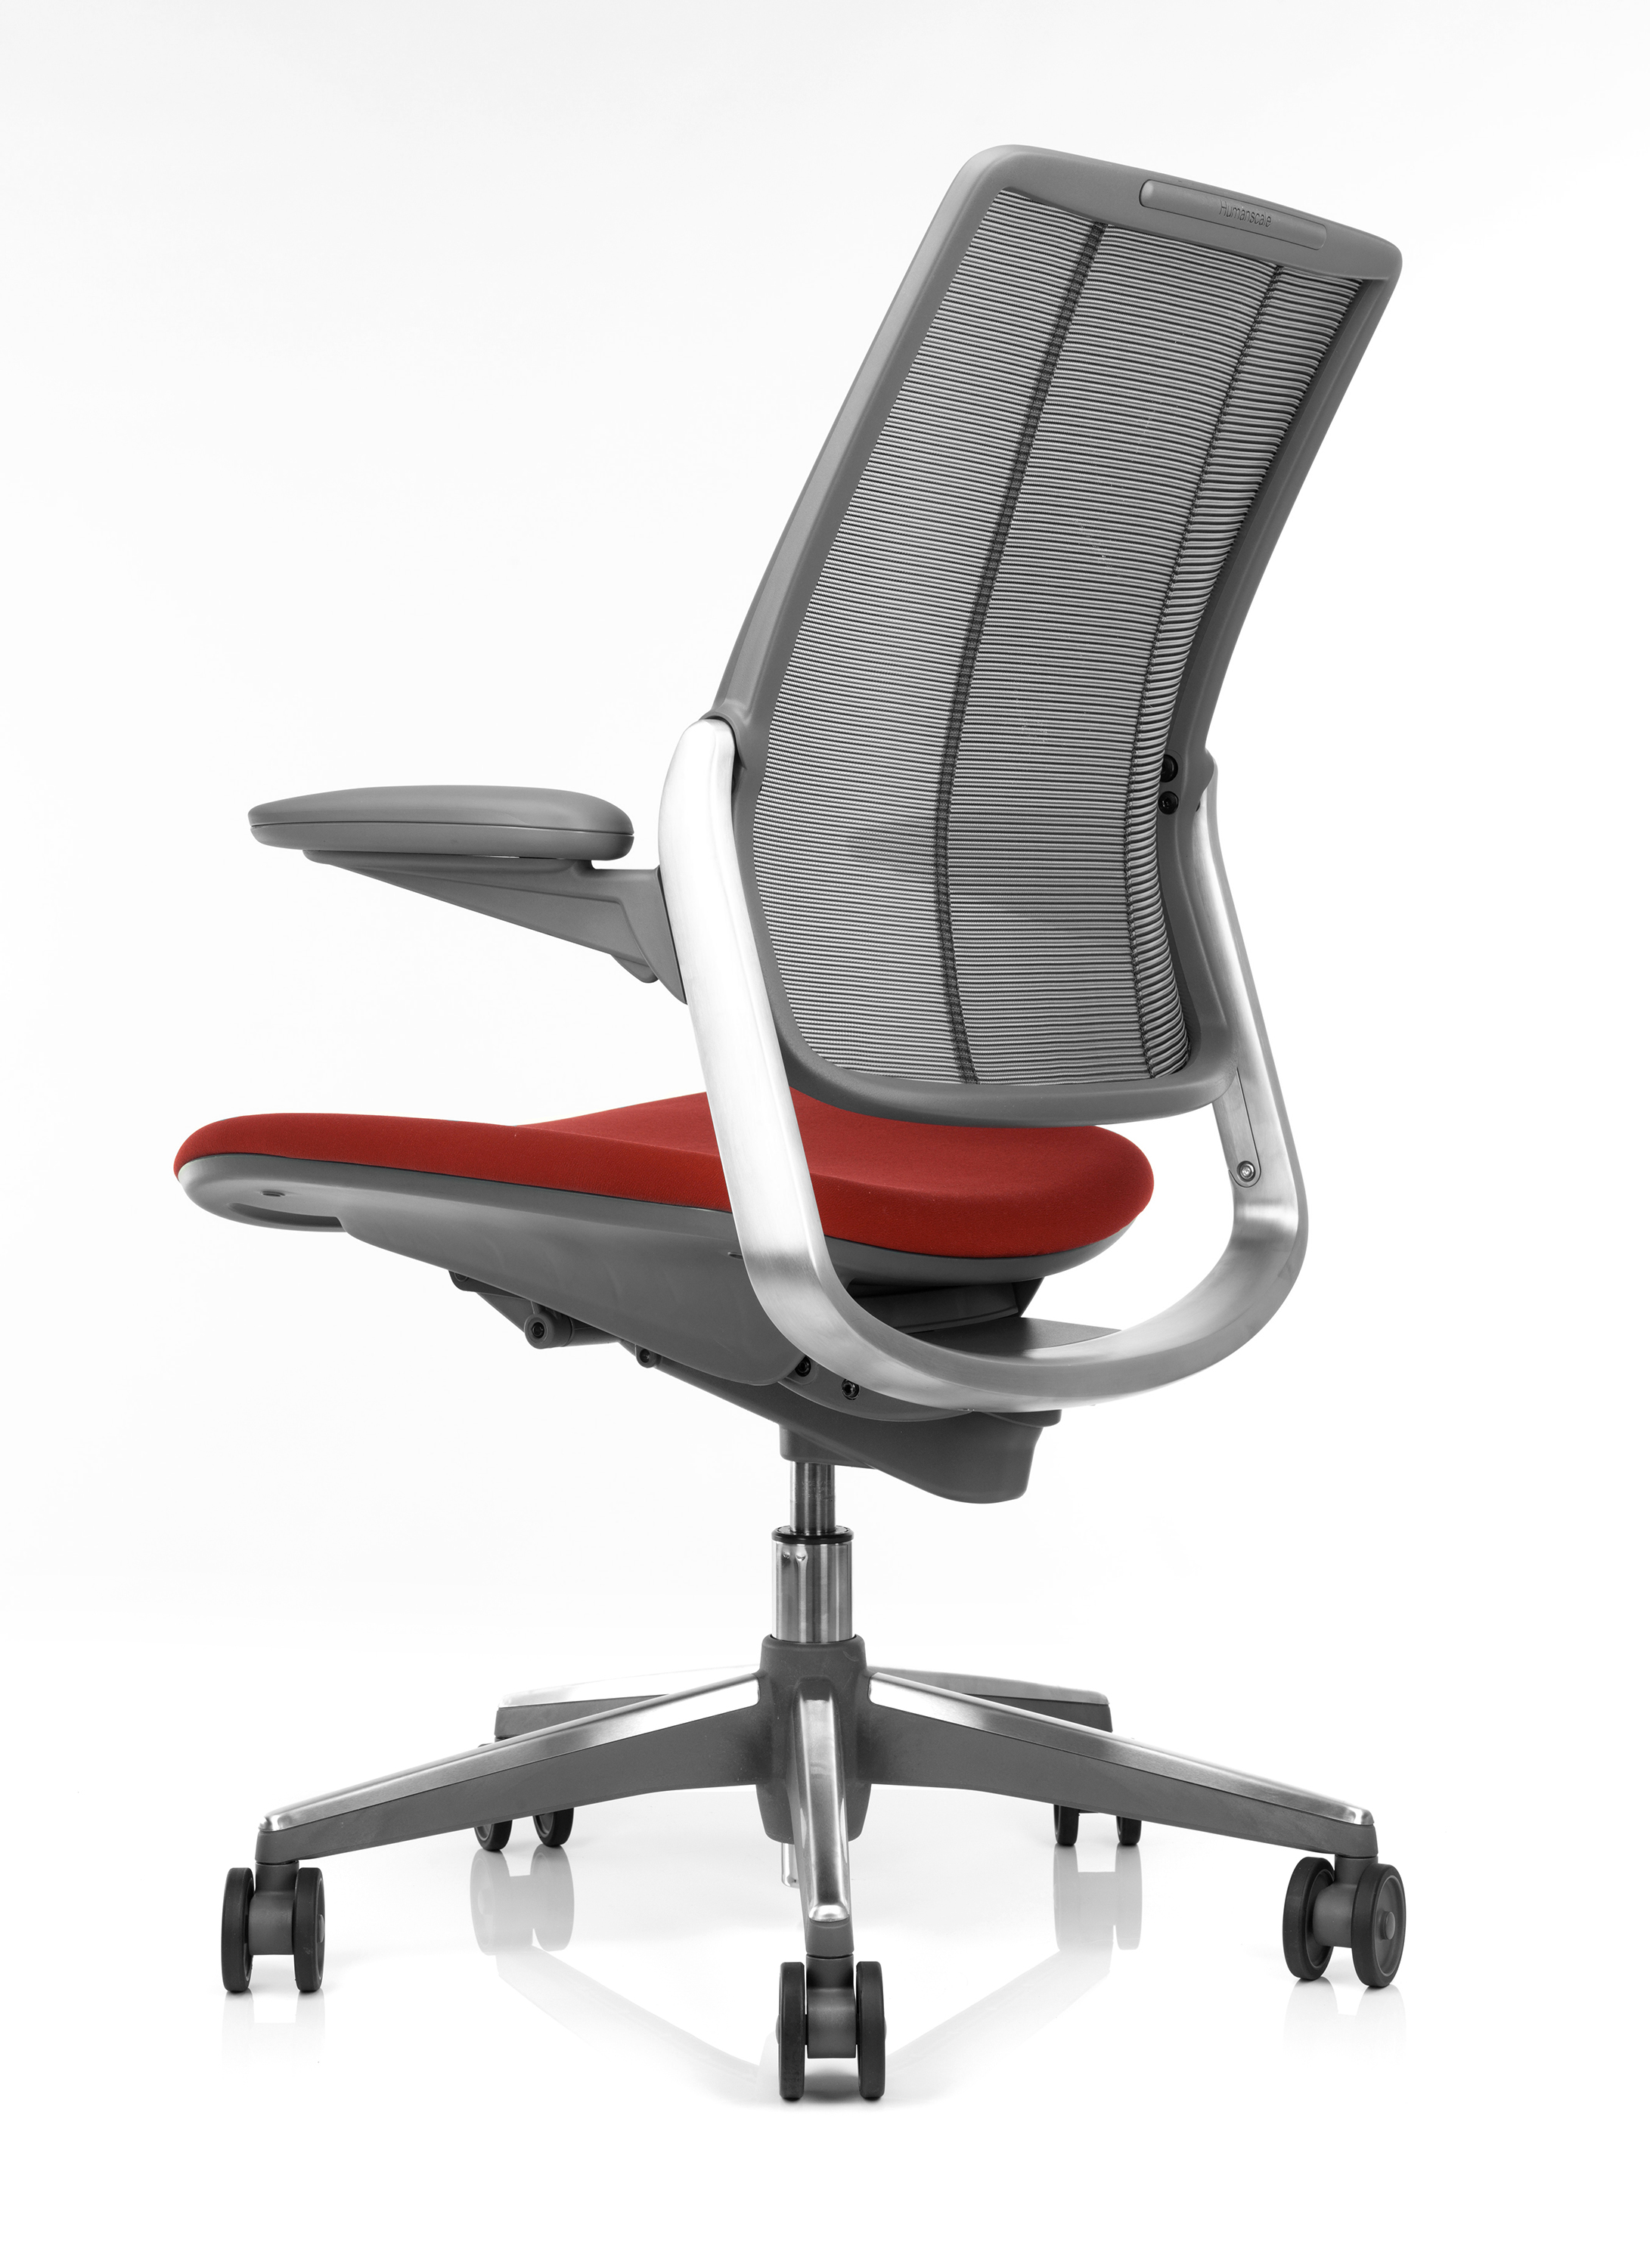 Office Seating Chairs diffrient smart chair - humanscale's newest office seating solution